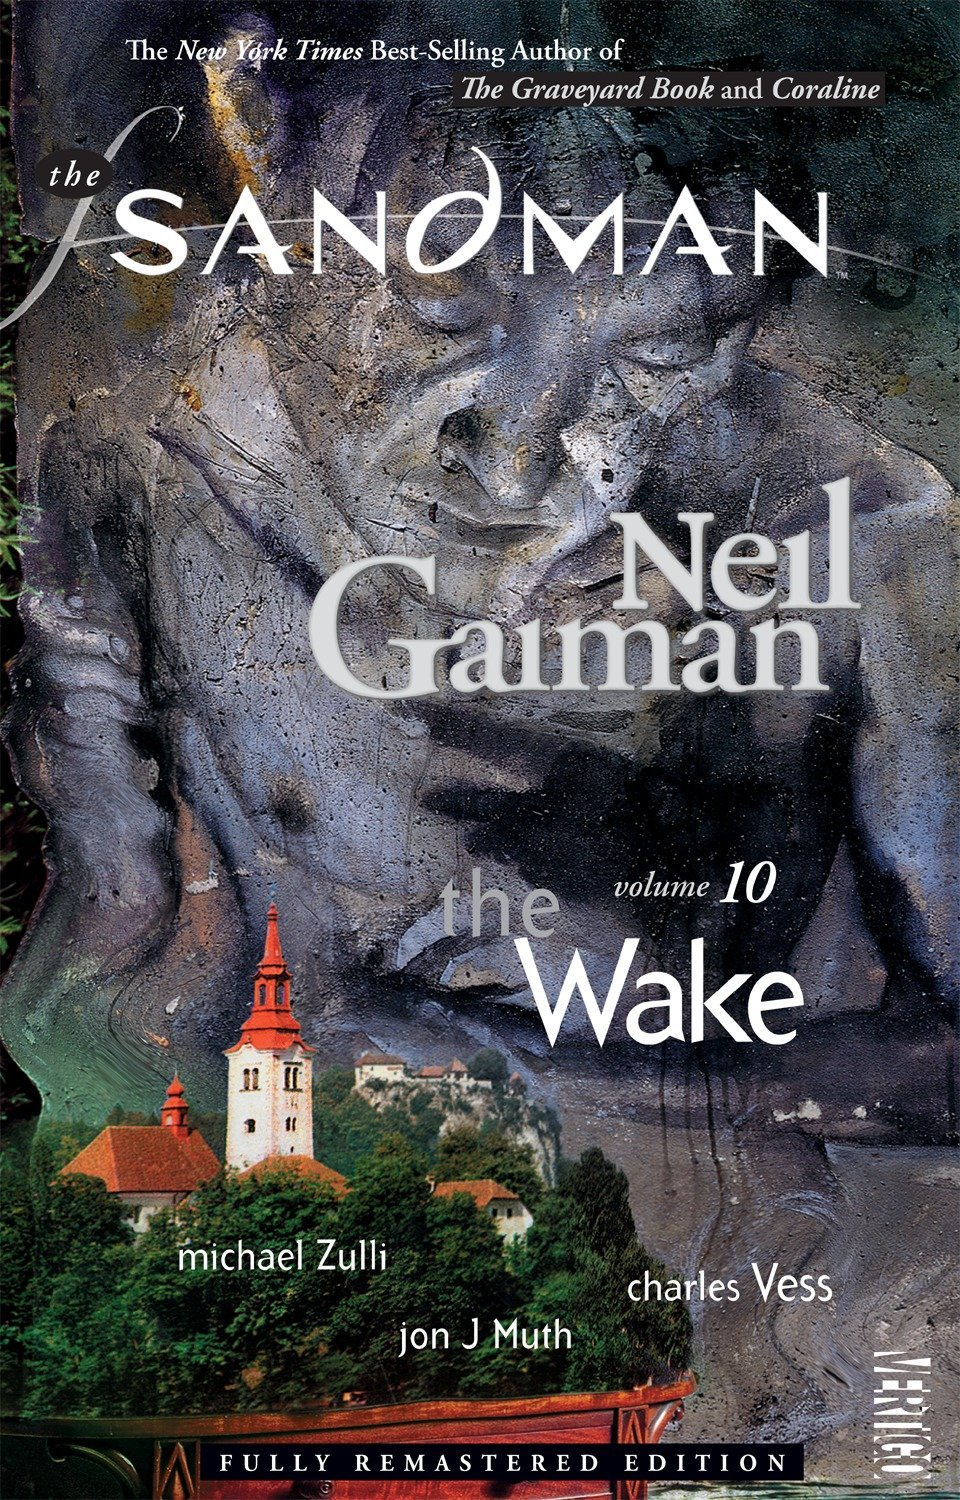 The Sandman Vol. 10  The Wake  New Edition